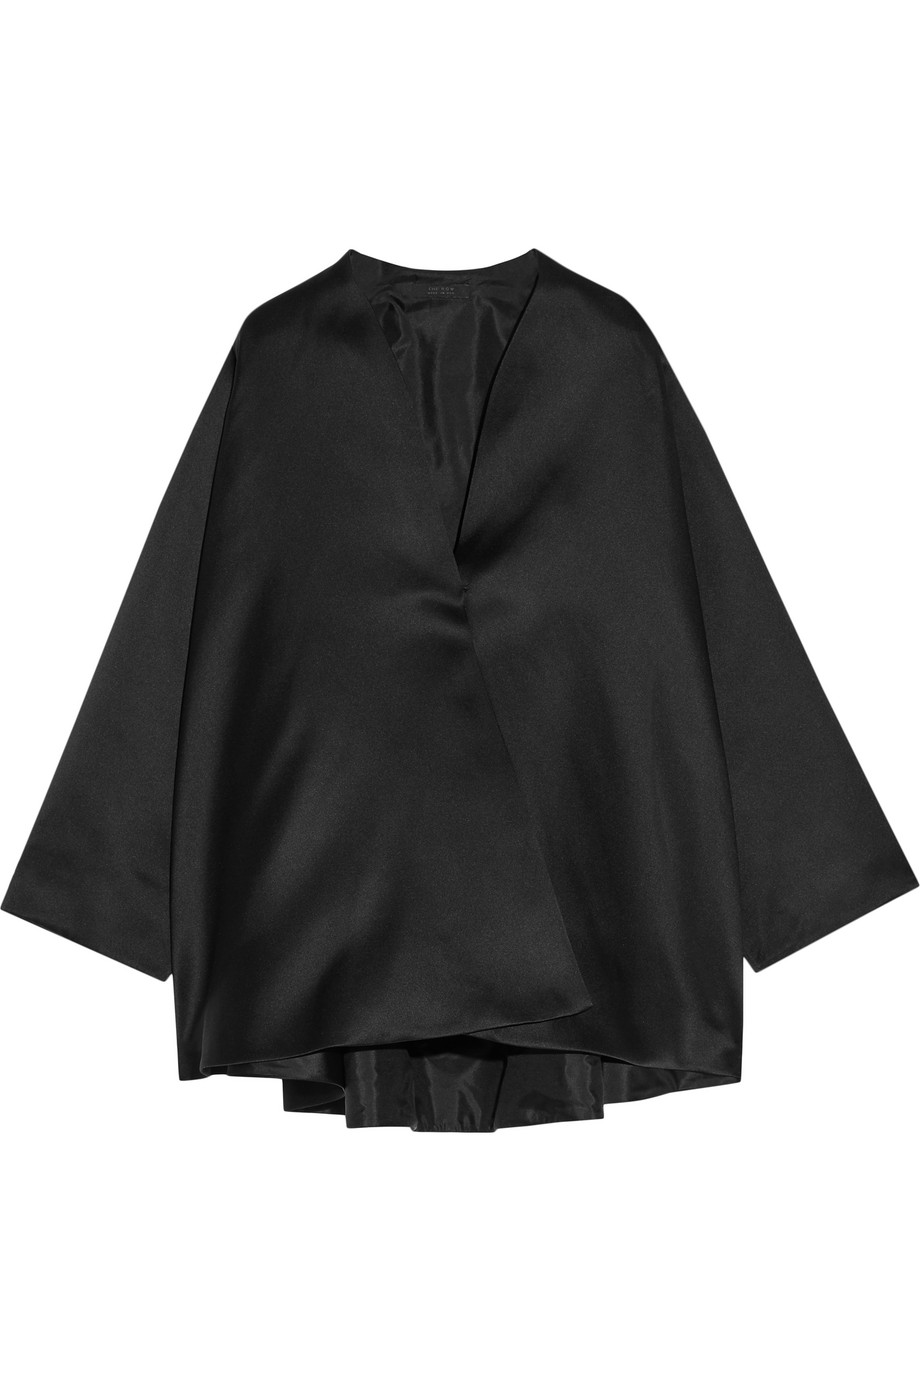 The Row Tere Silk-Satin Jacket, Size: XS